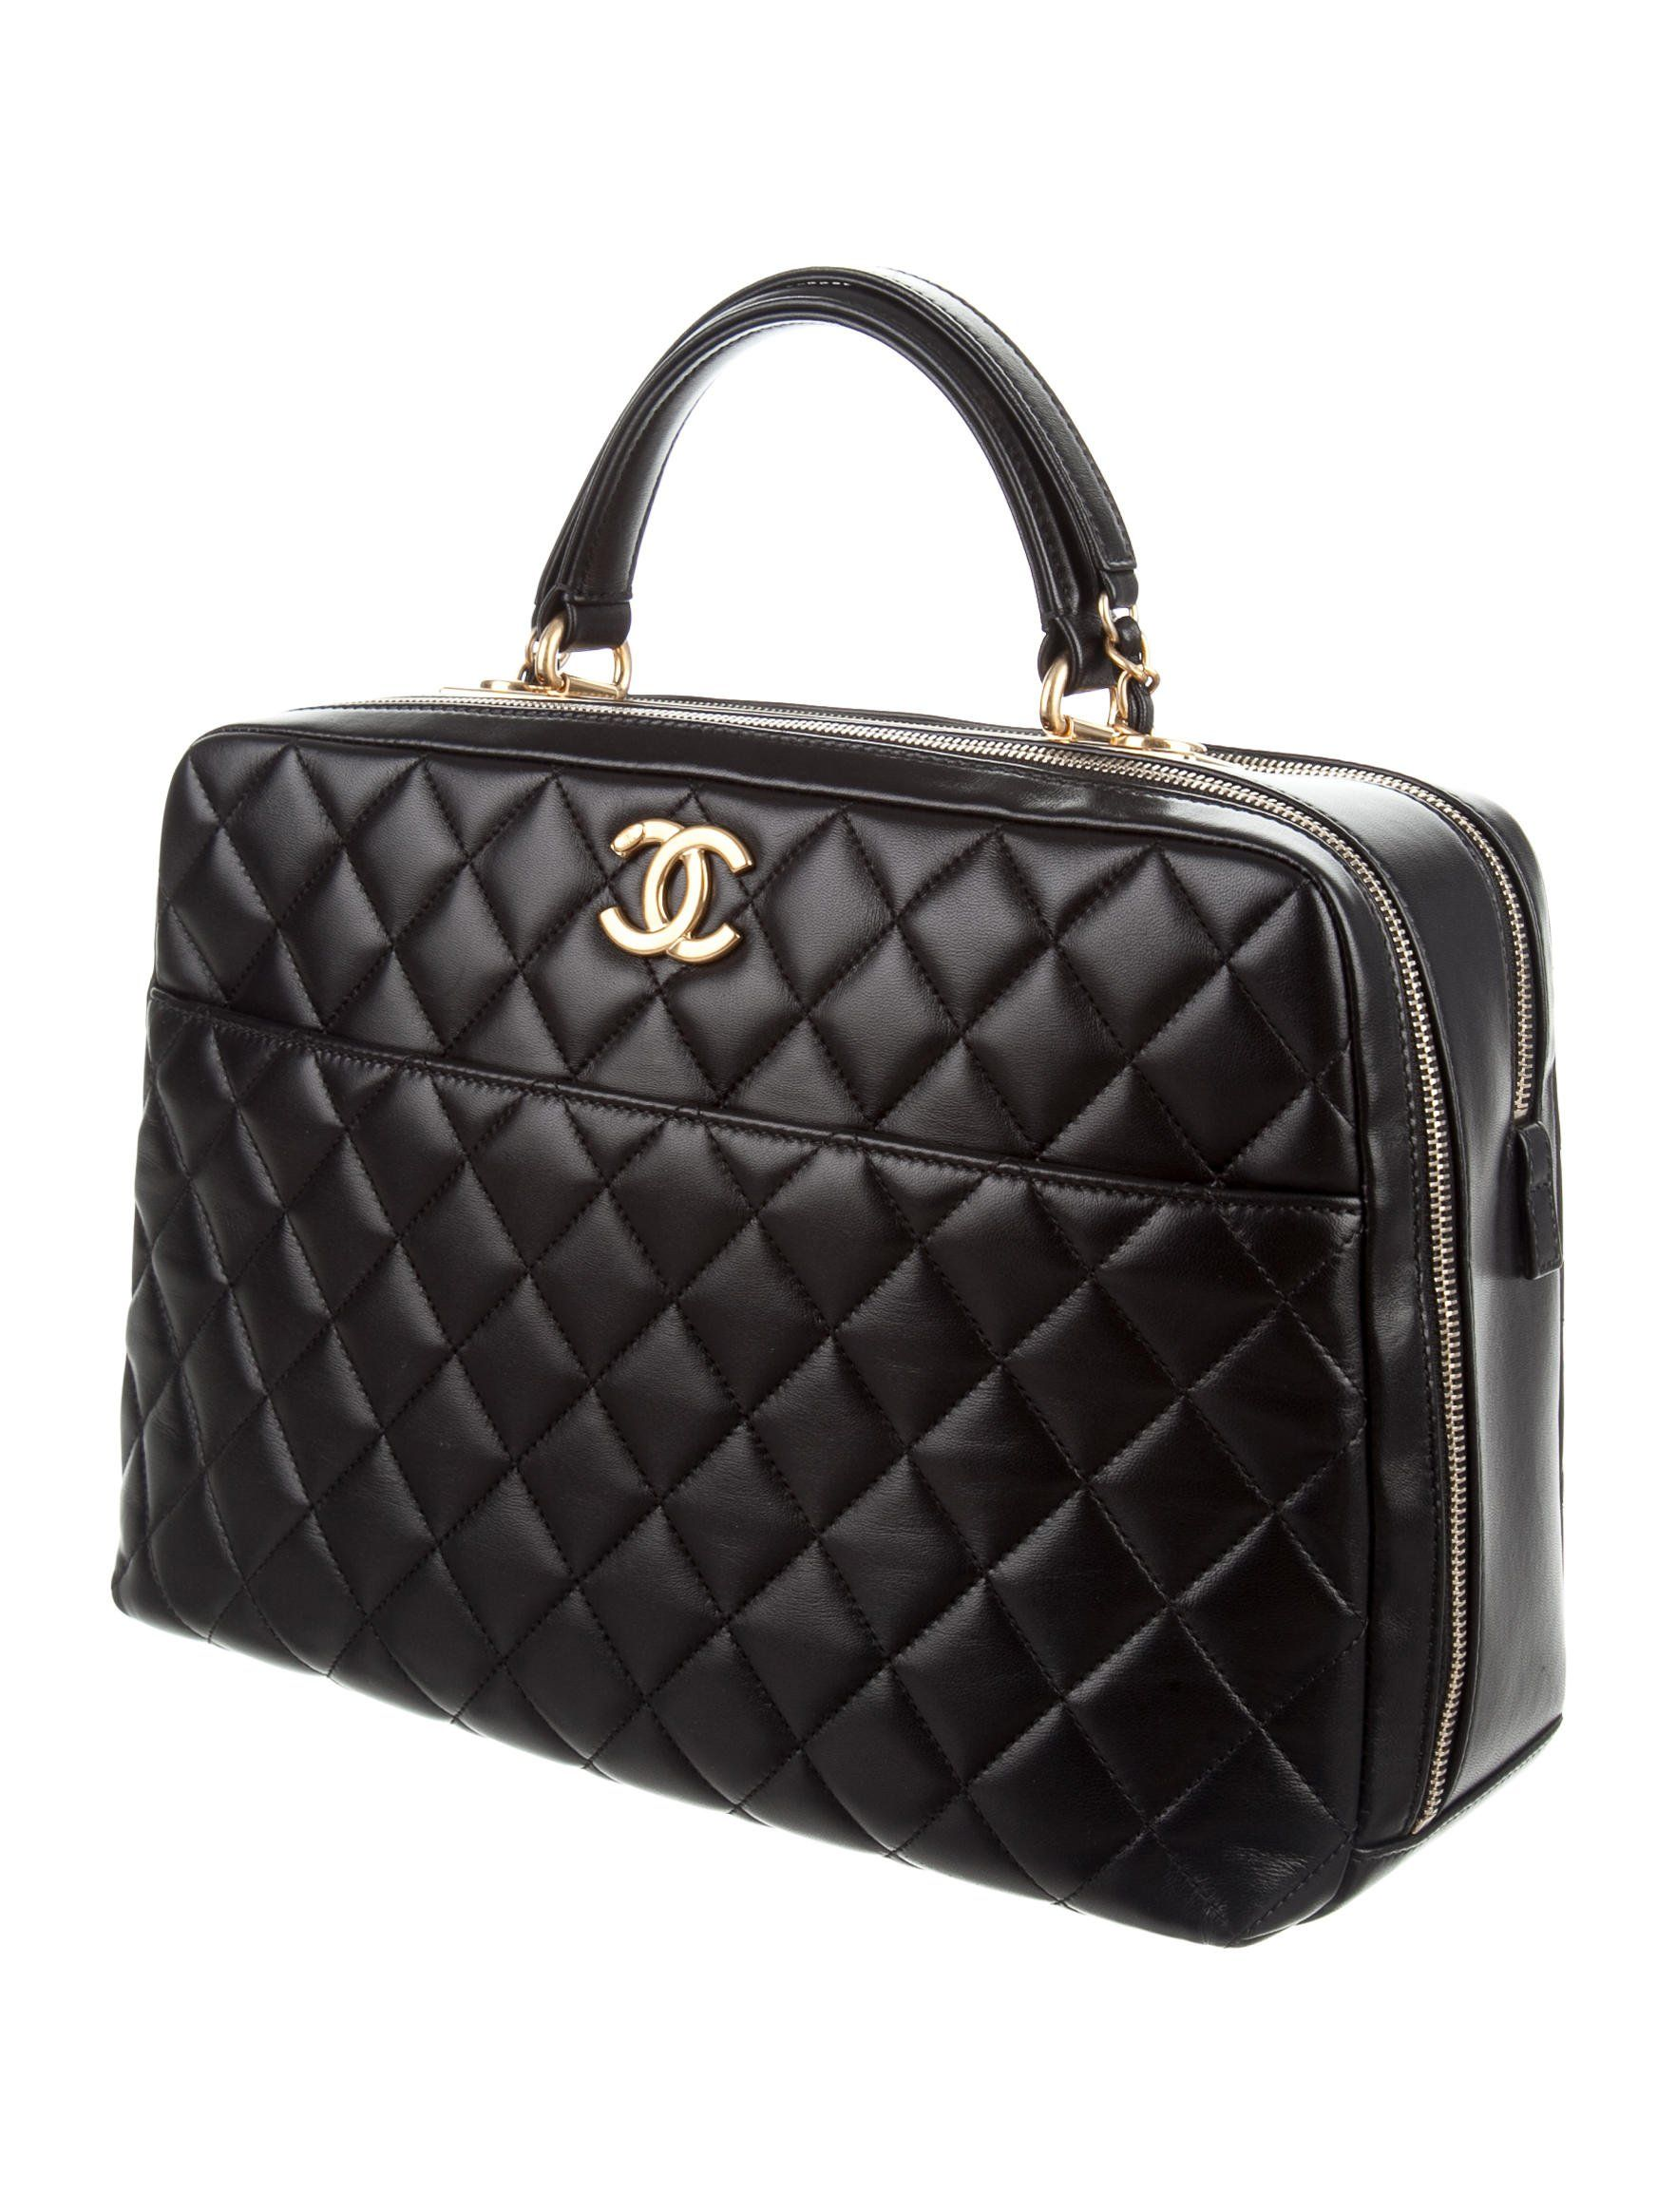 9473a71ed2 CHANEL Caviar Quilted Large CC Box Shopping Tote Black in 2019 | BAGS |  Chanel caviar, Shopping totes, Chanel